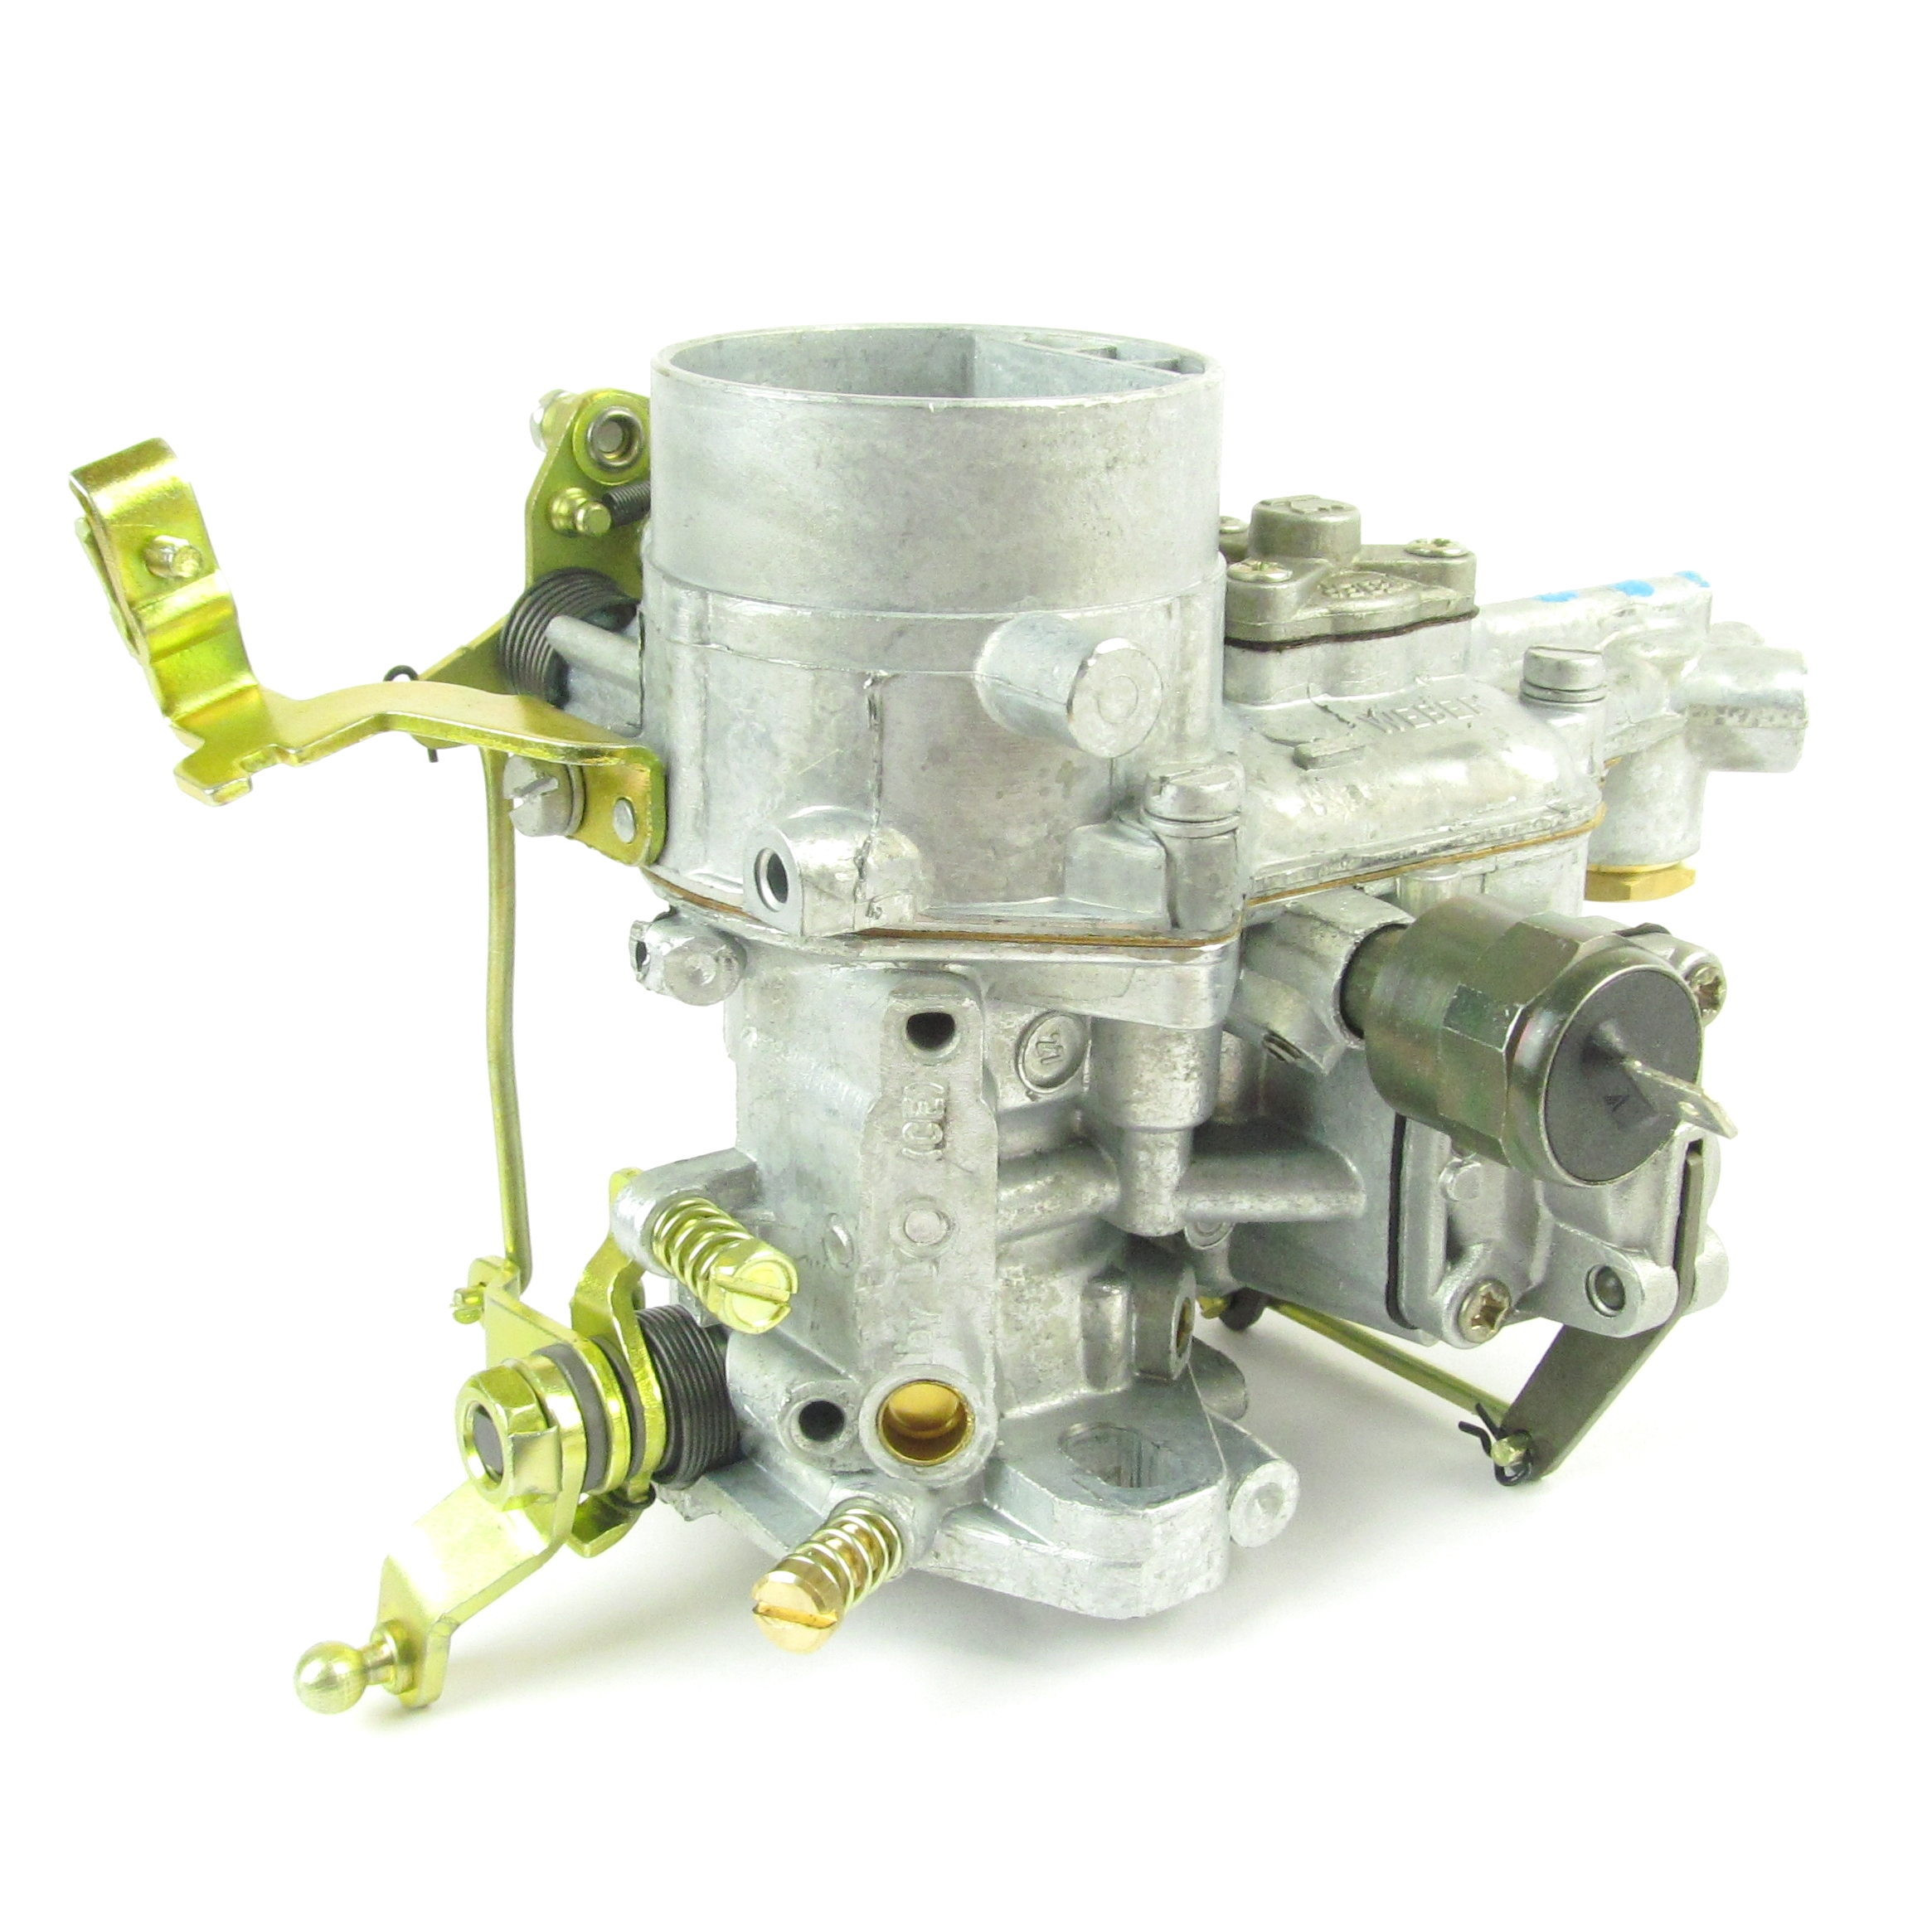 GENUINE WEBER 34 ICH CARBURETTOR (27MM VENTURI CHOKE)